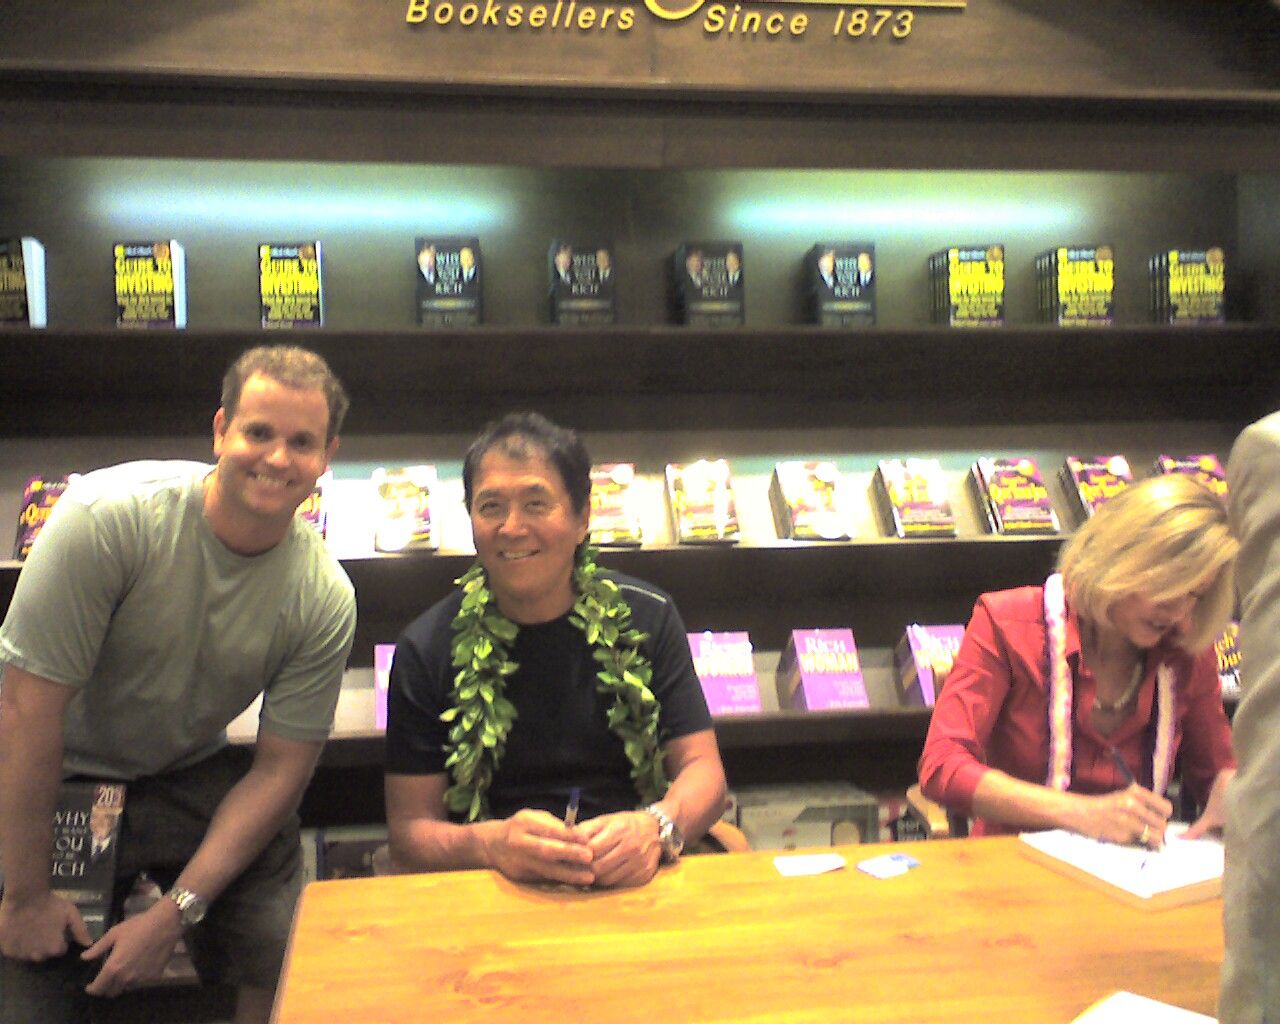 David with Robert and Kim Kiyosaki